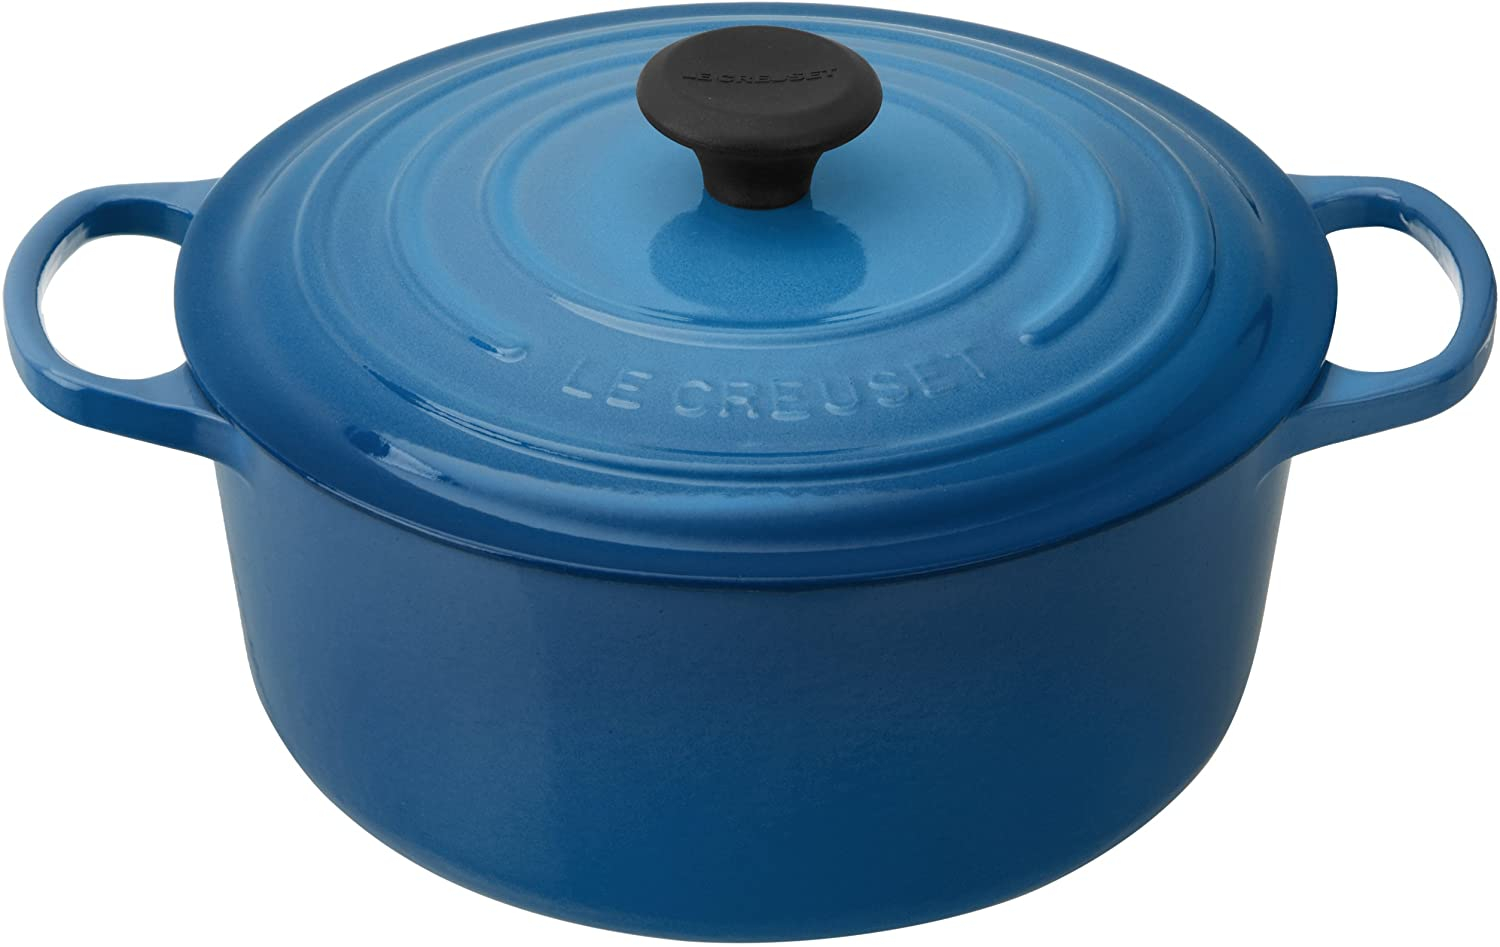 gifts-for-stepmom-dutch-oven